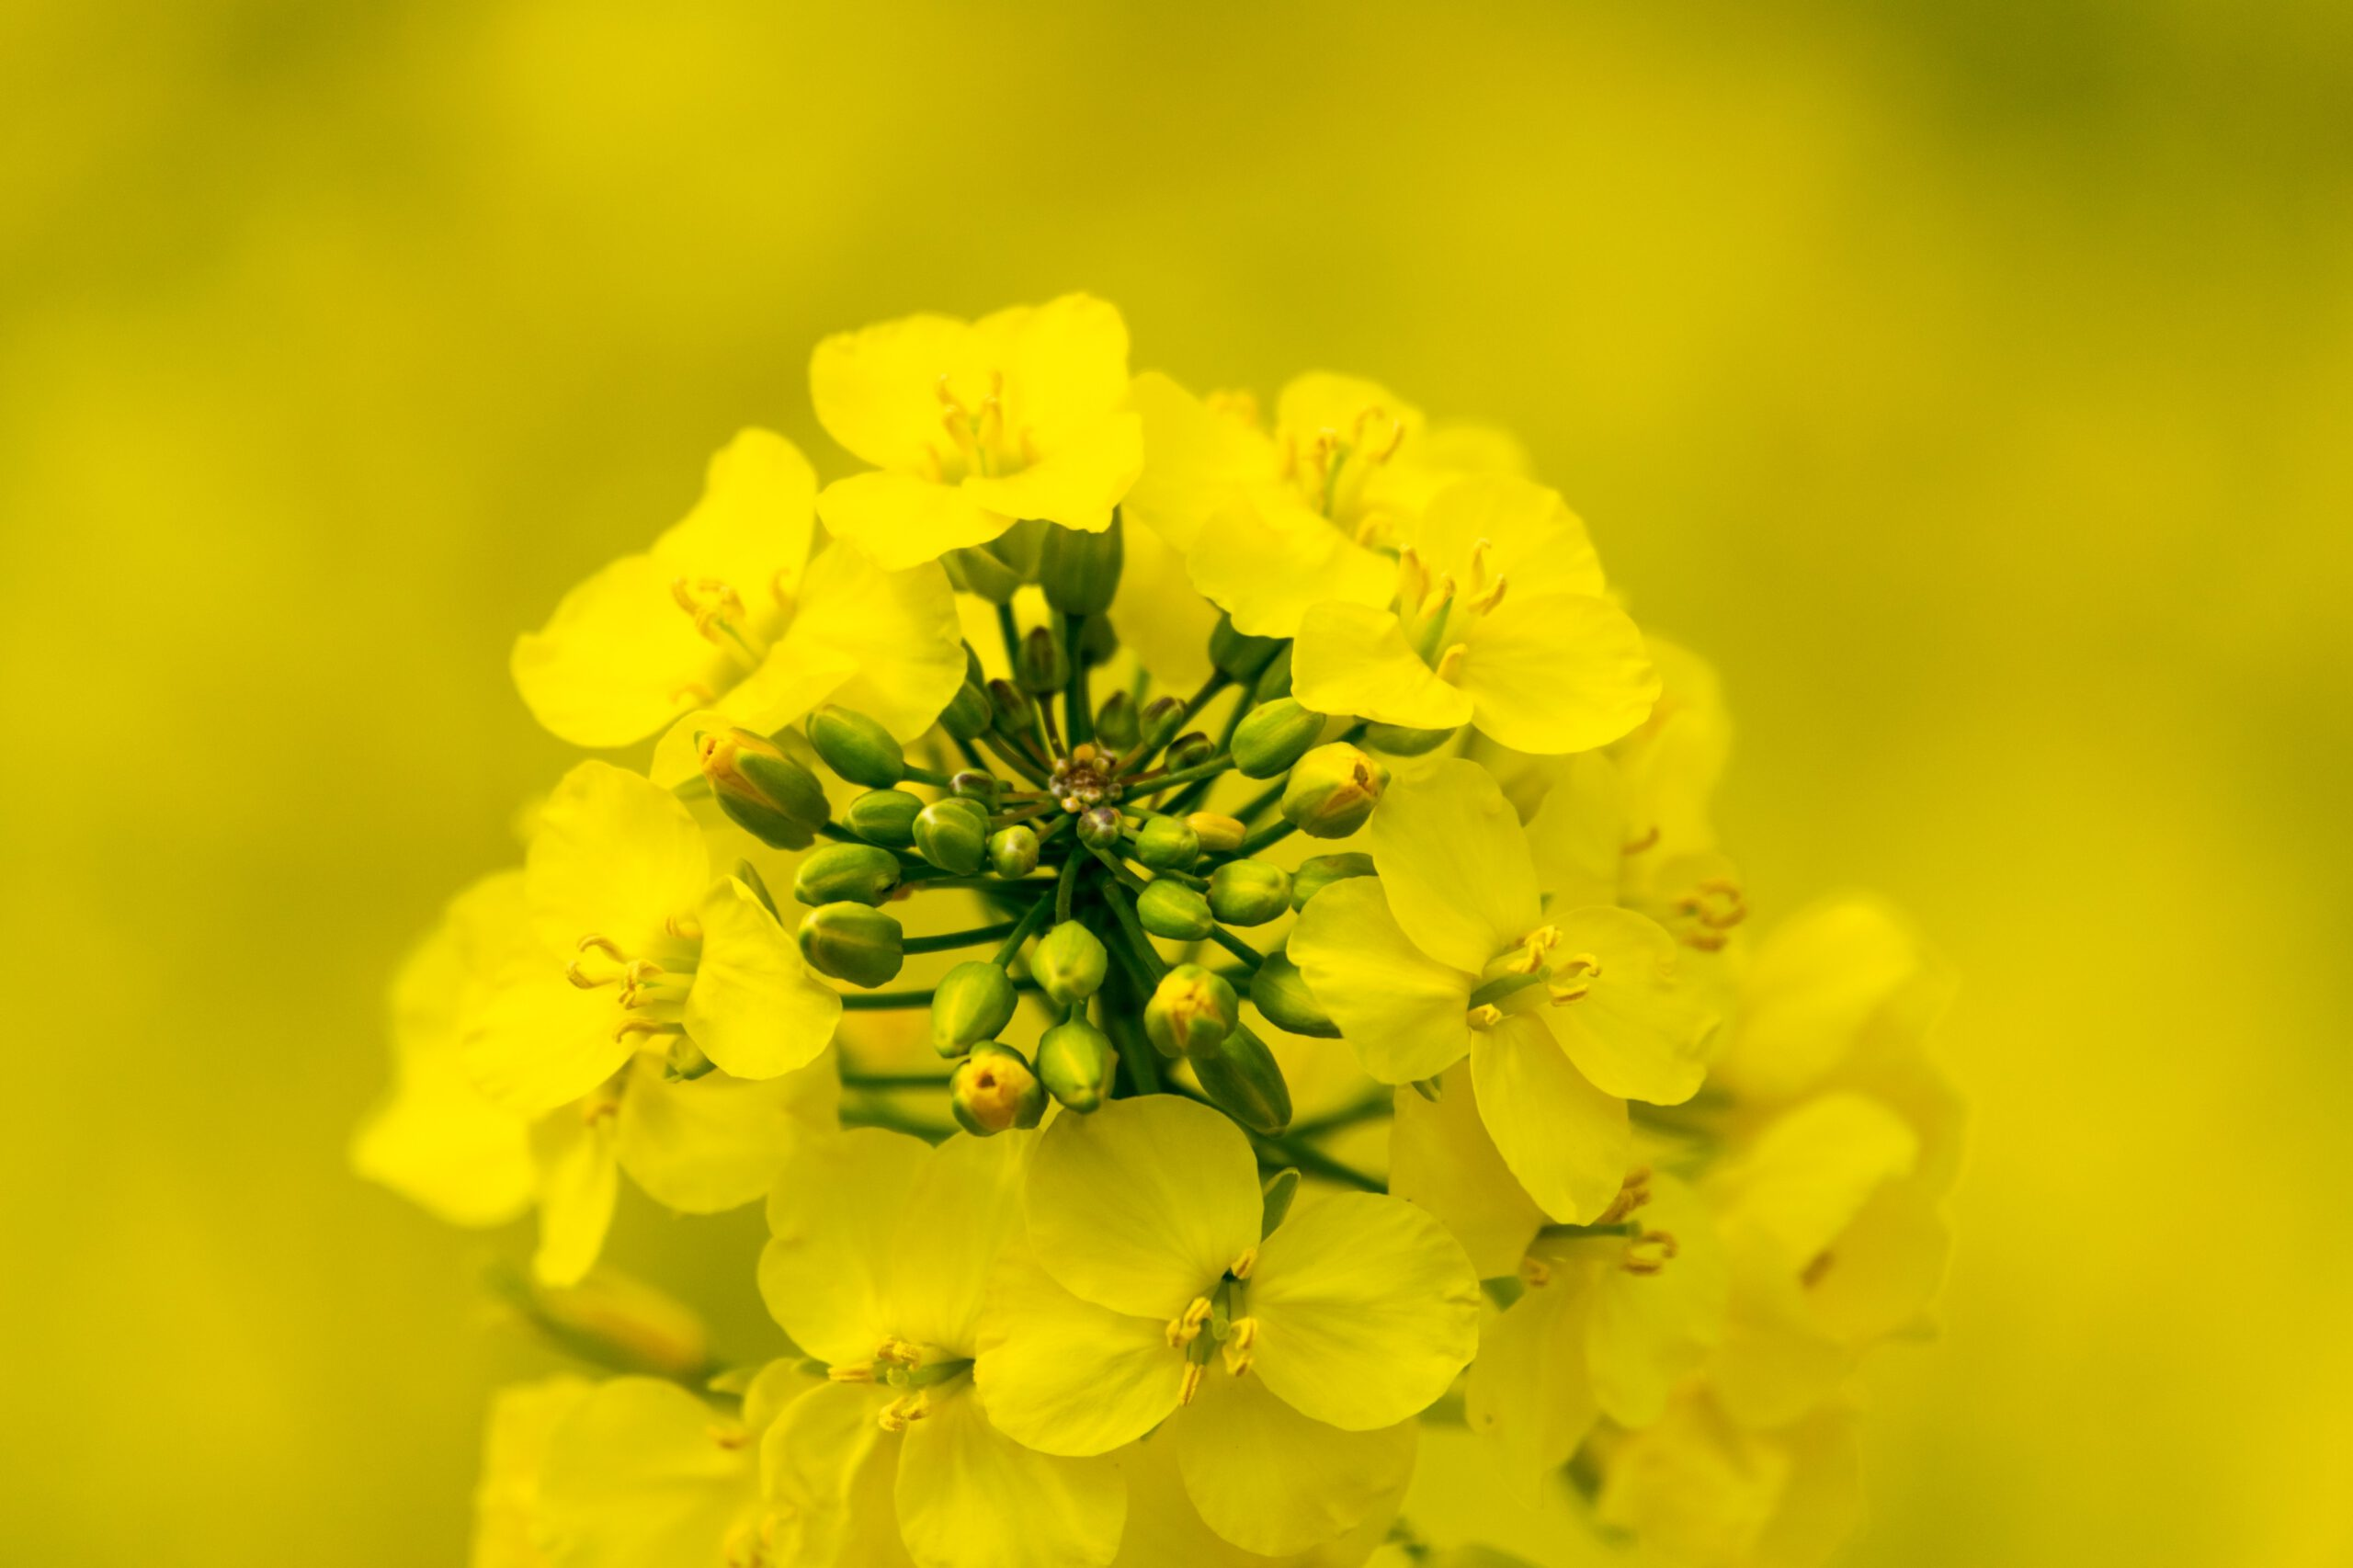 Is Canola a Danger to Health?